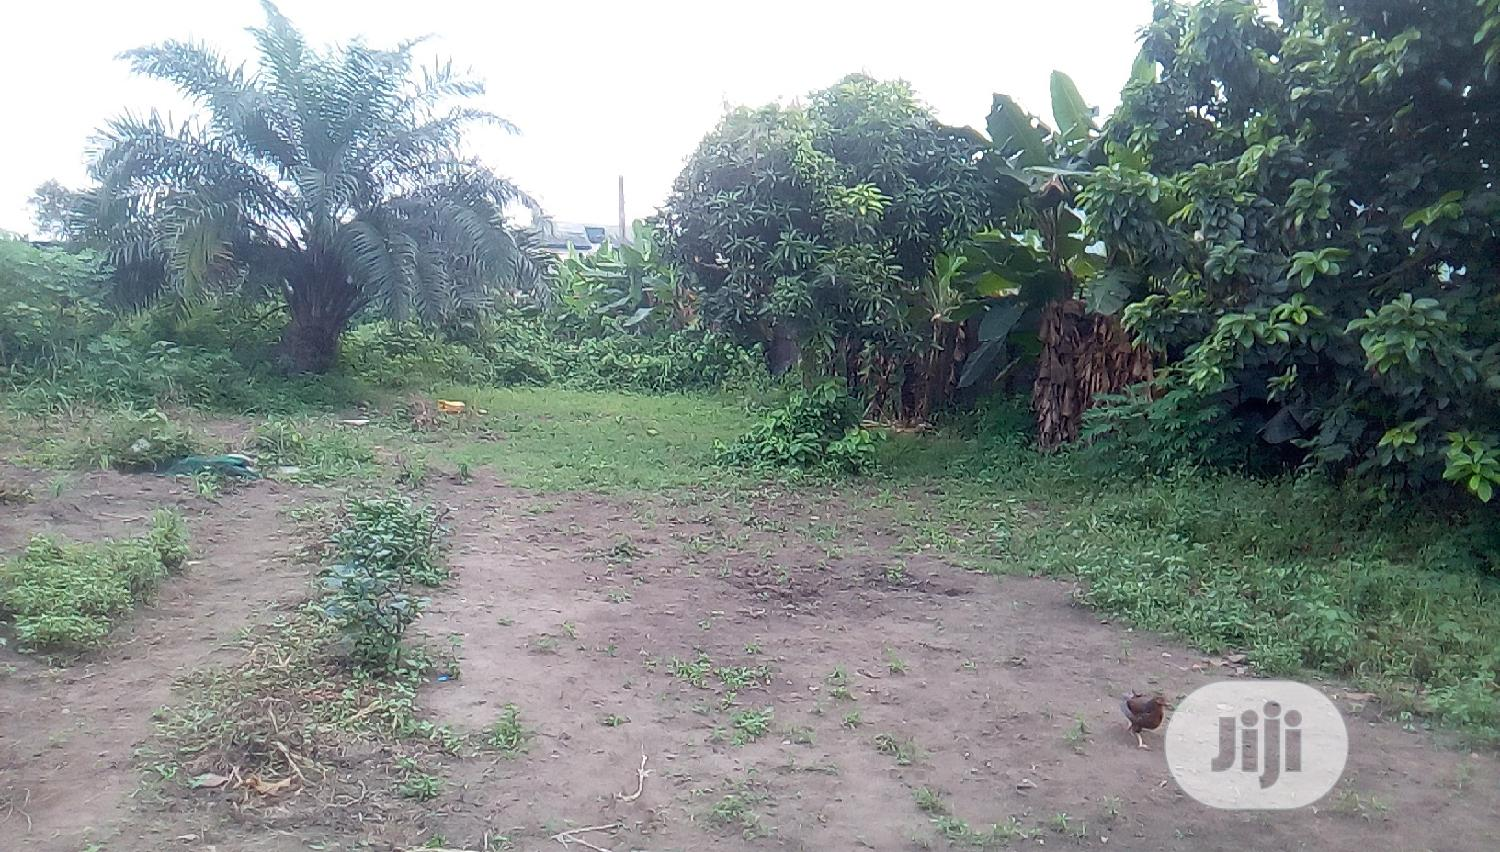 Distress Sale One Plot of Land for Sale at Rumukwurusi | Land & Plots For Sale for sale in Rumuokwurusi, Port-Harcourt, Nigeria